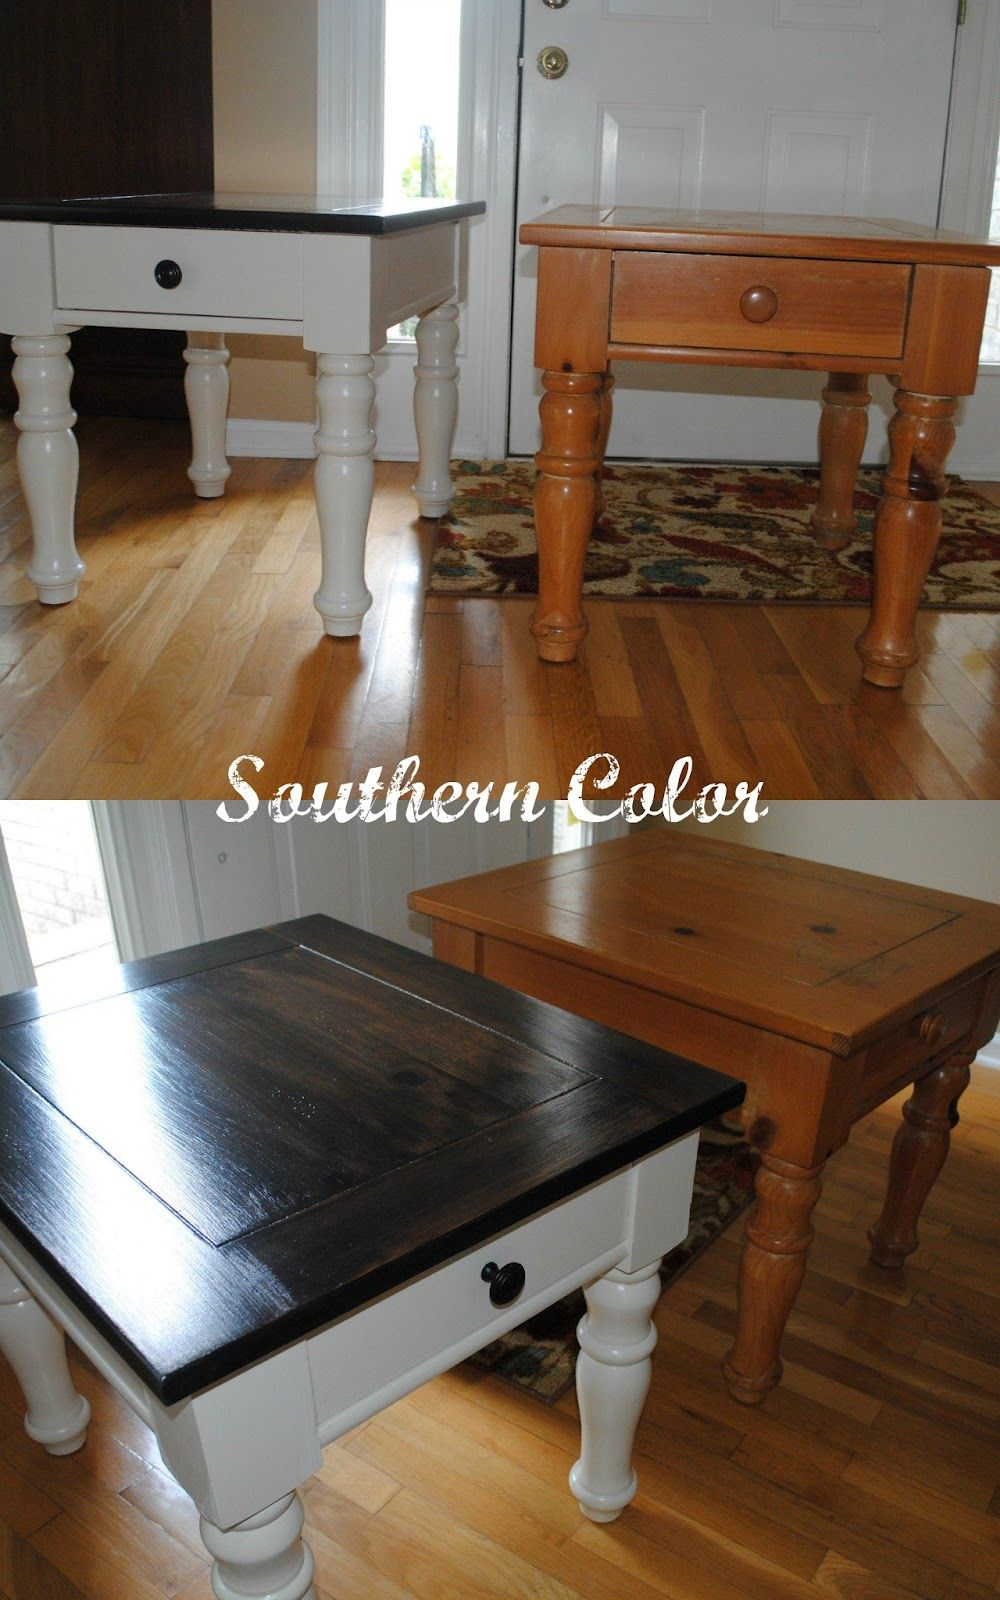 Southern color side table reveal hoh106 hookin up with hoh refinished side tables perfect for the lonely end table missing its brother and the coffee table that were broken by the boys in my house geotapseo Image collections